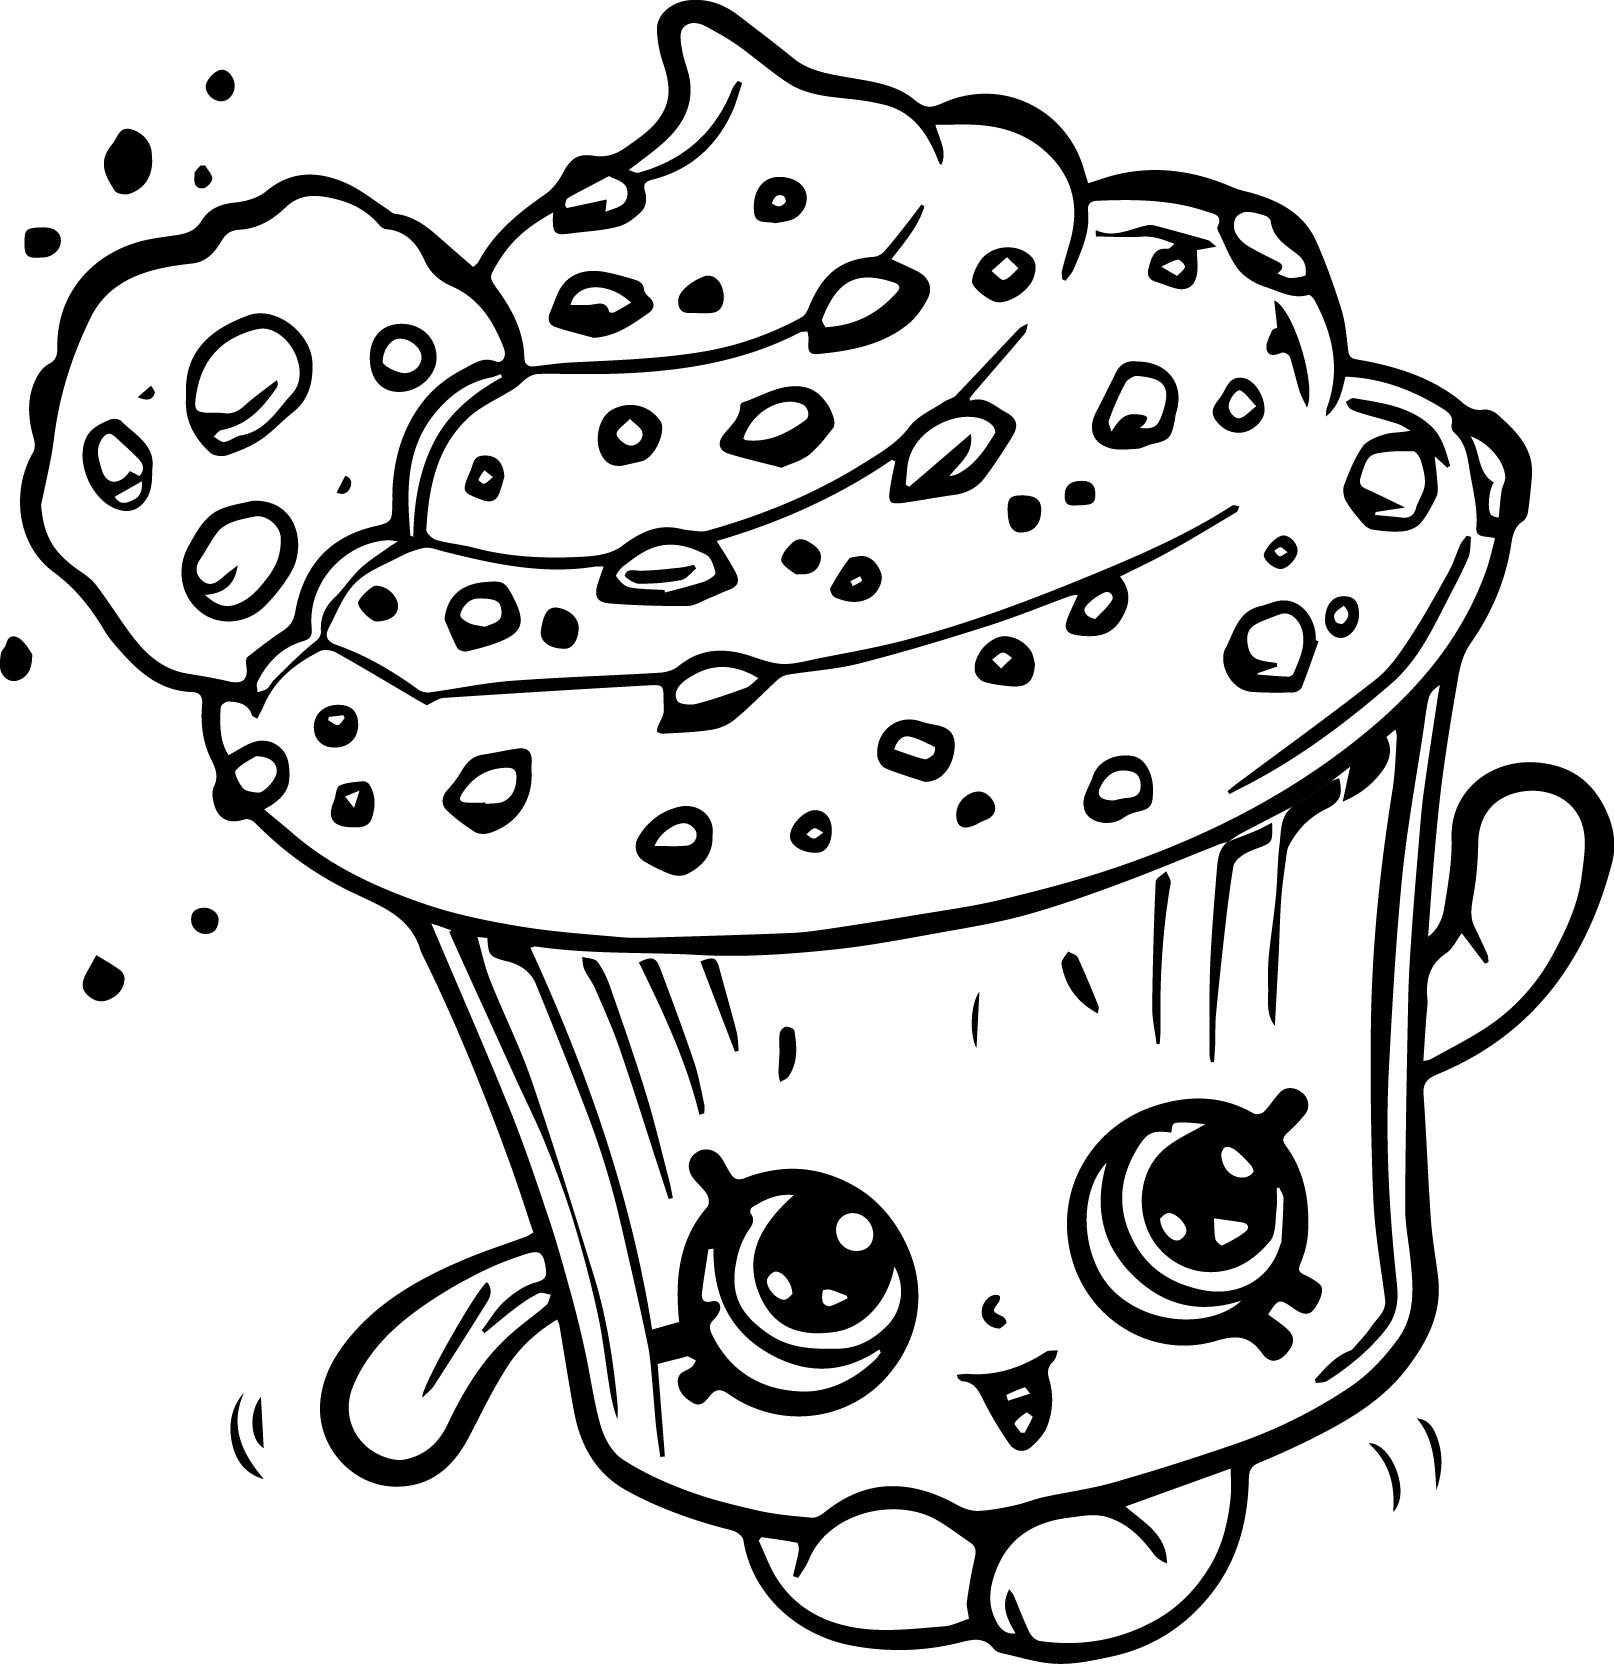 Shopkins Coloring Pages To Print – Best Coloring Pages